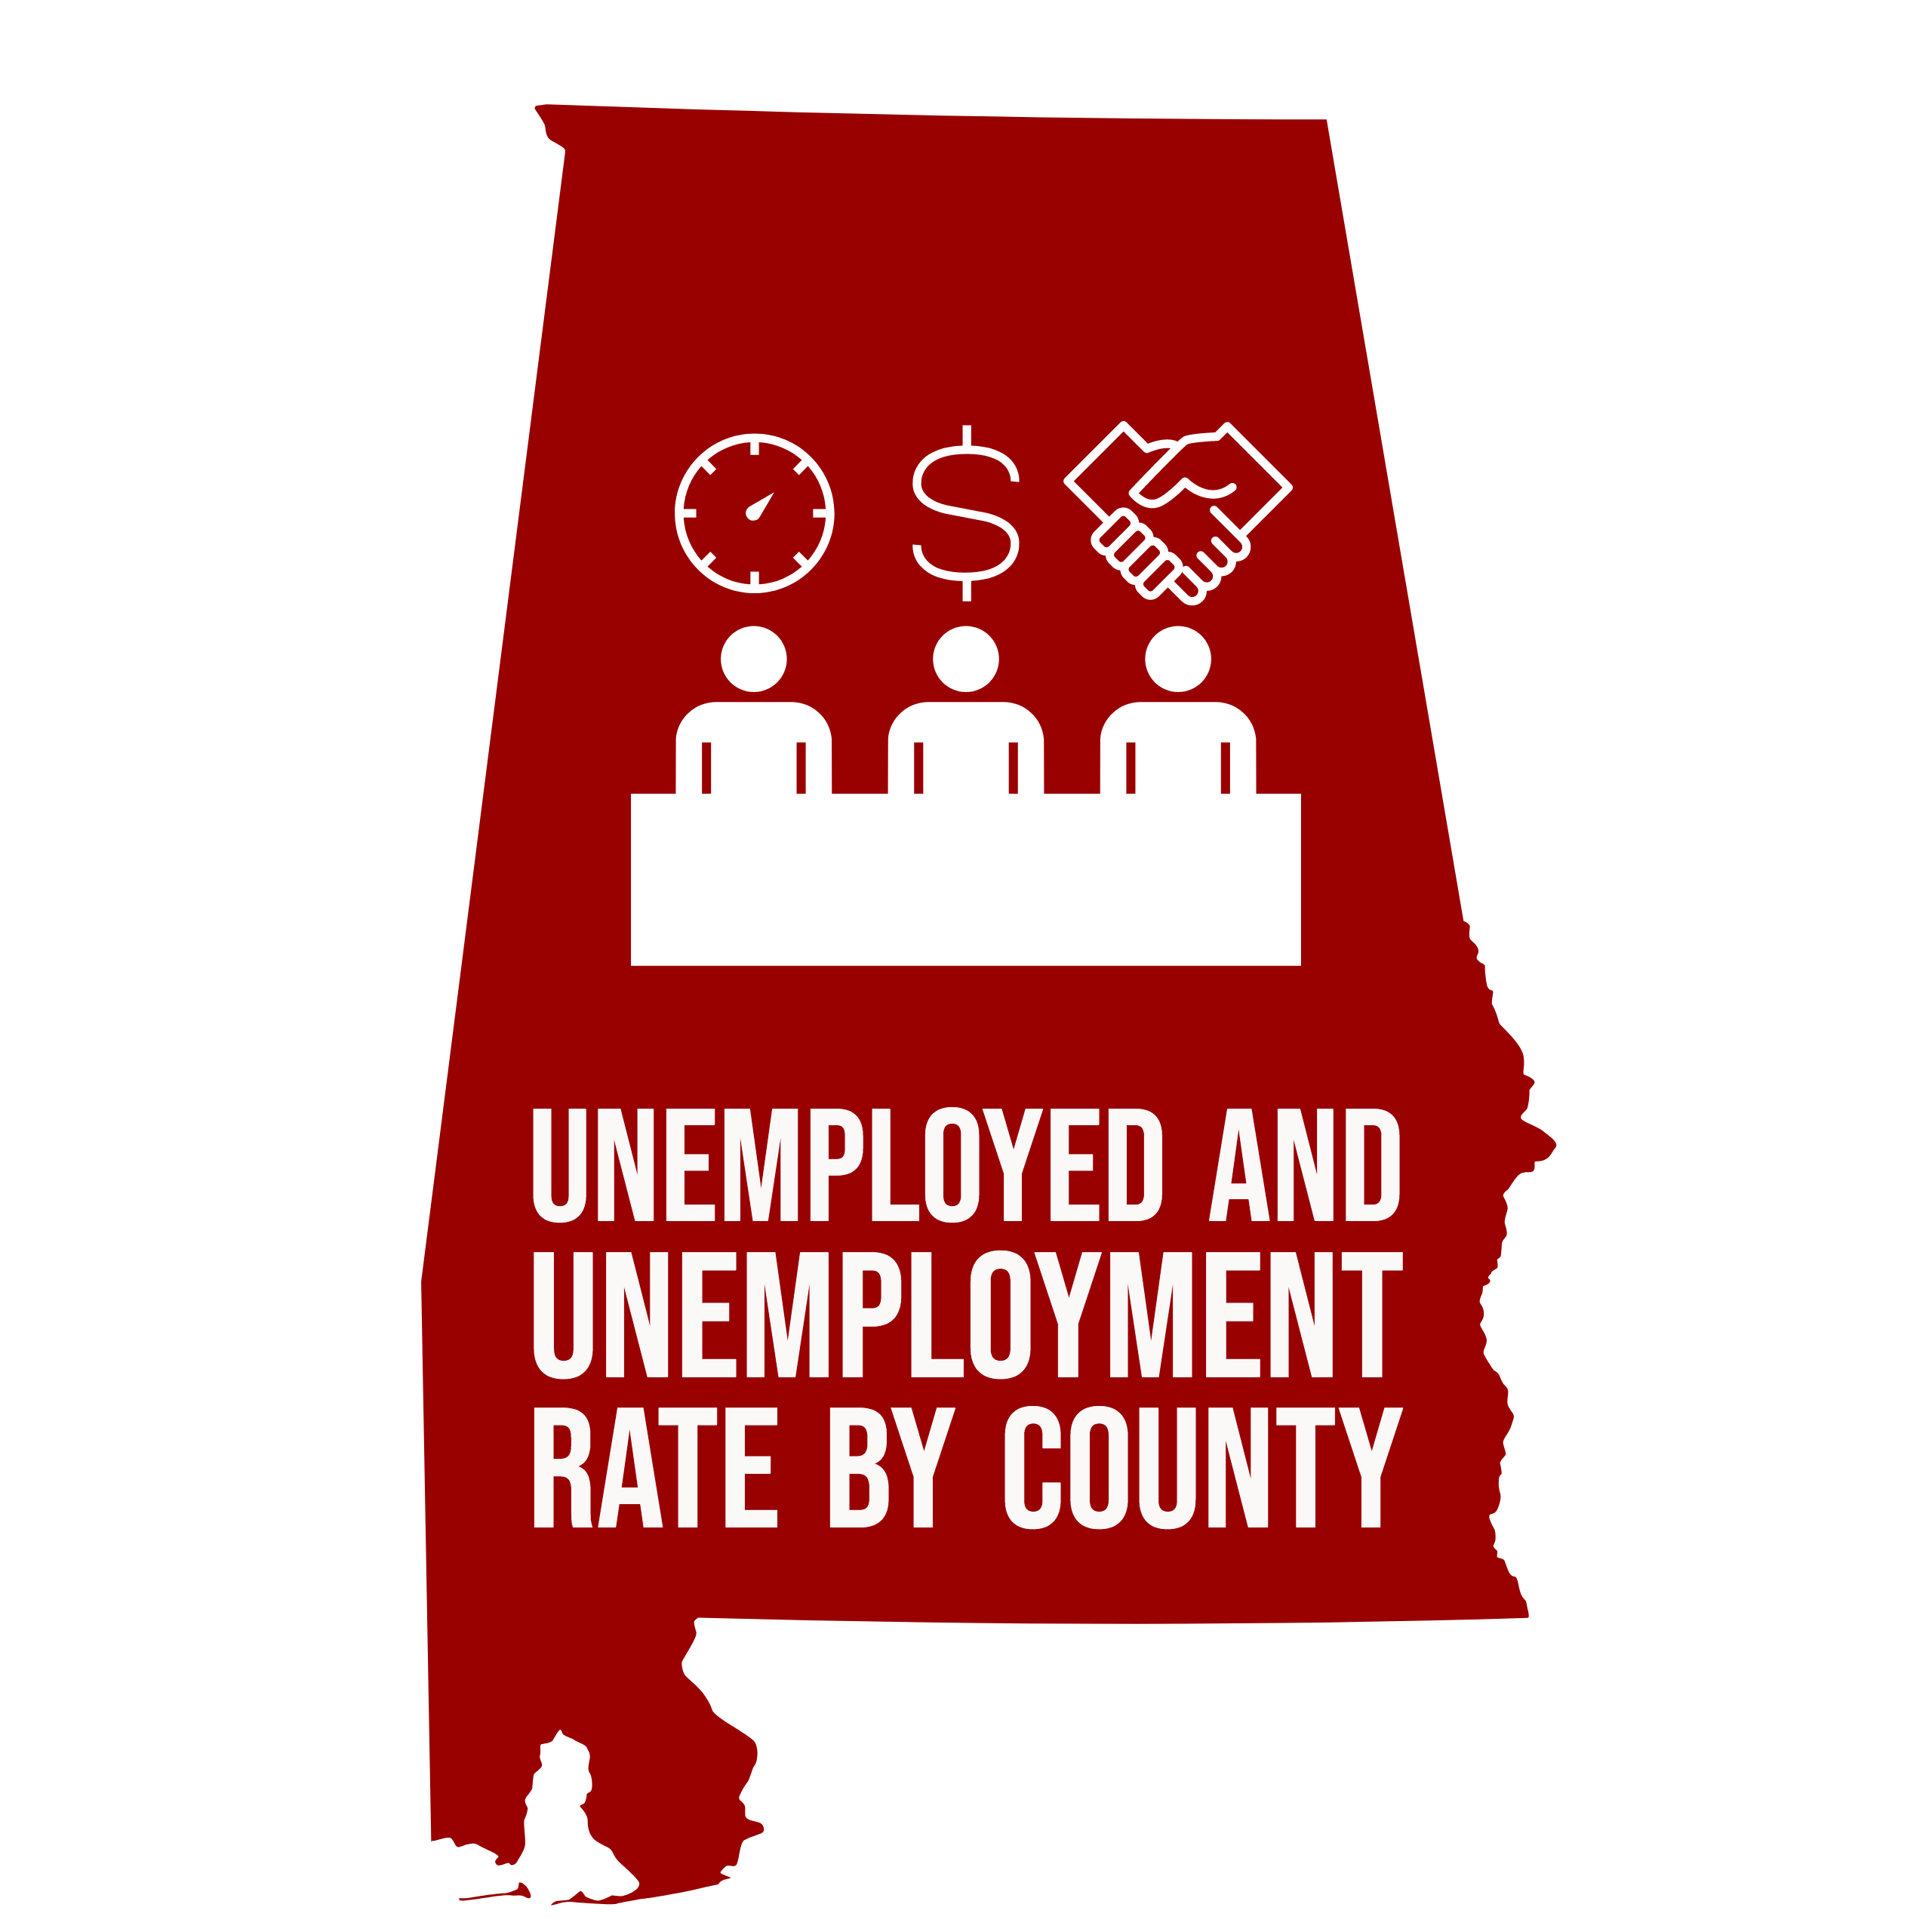 Alabama Number Unemployed and Unemployment Rate